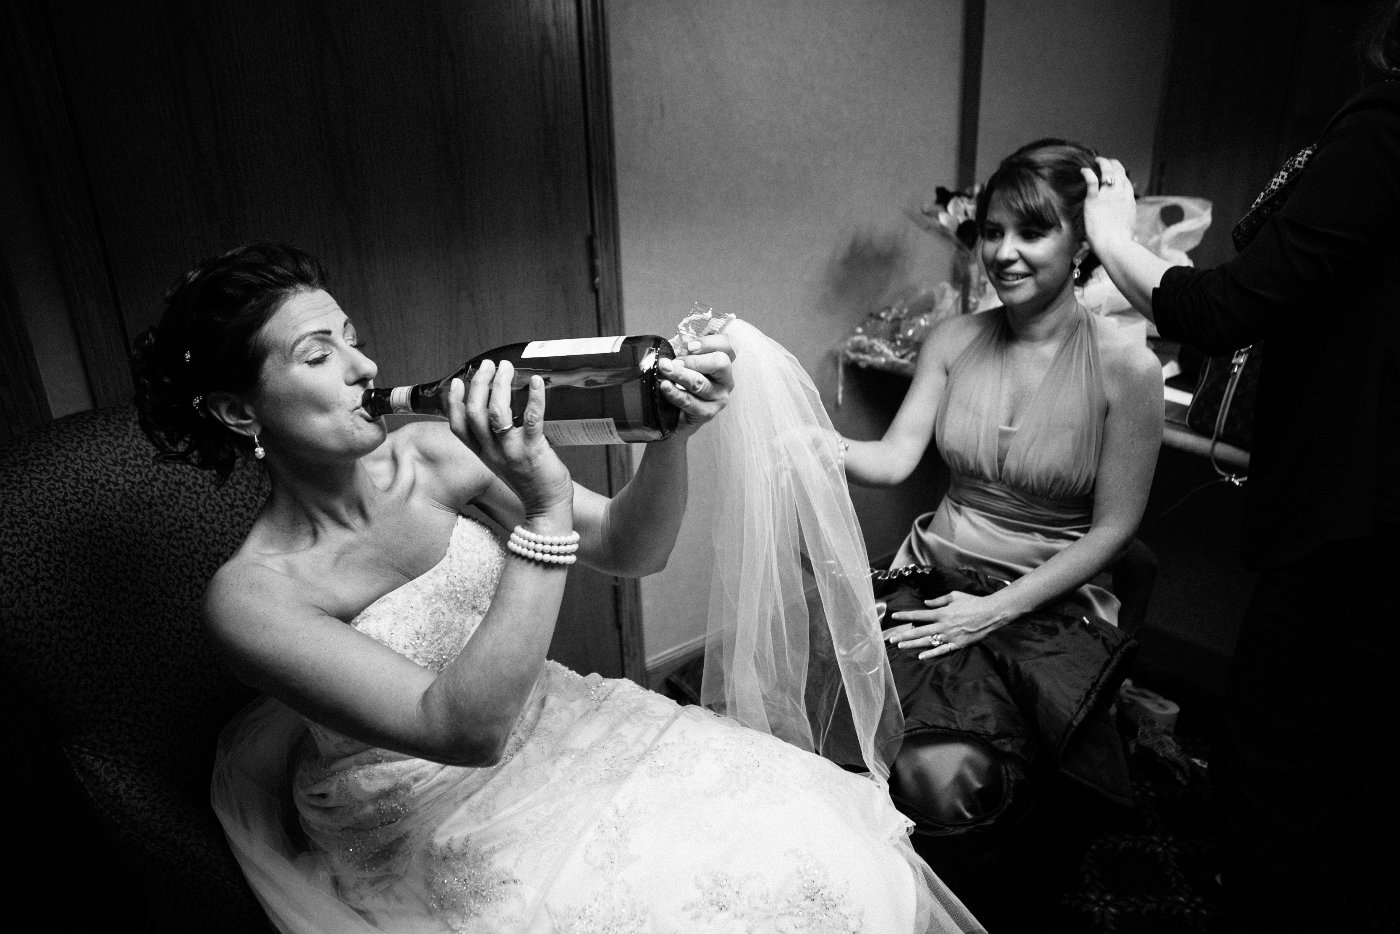 bride_drinking_champagne_san_marino_club_wedding_michigan - Jittery bride - Family & Parenting